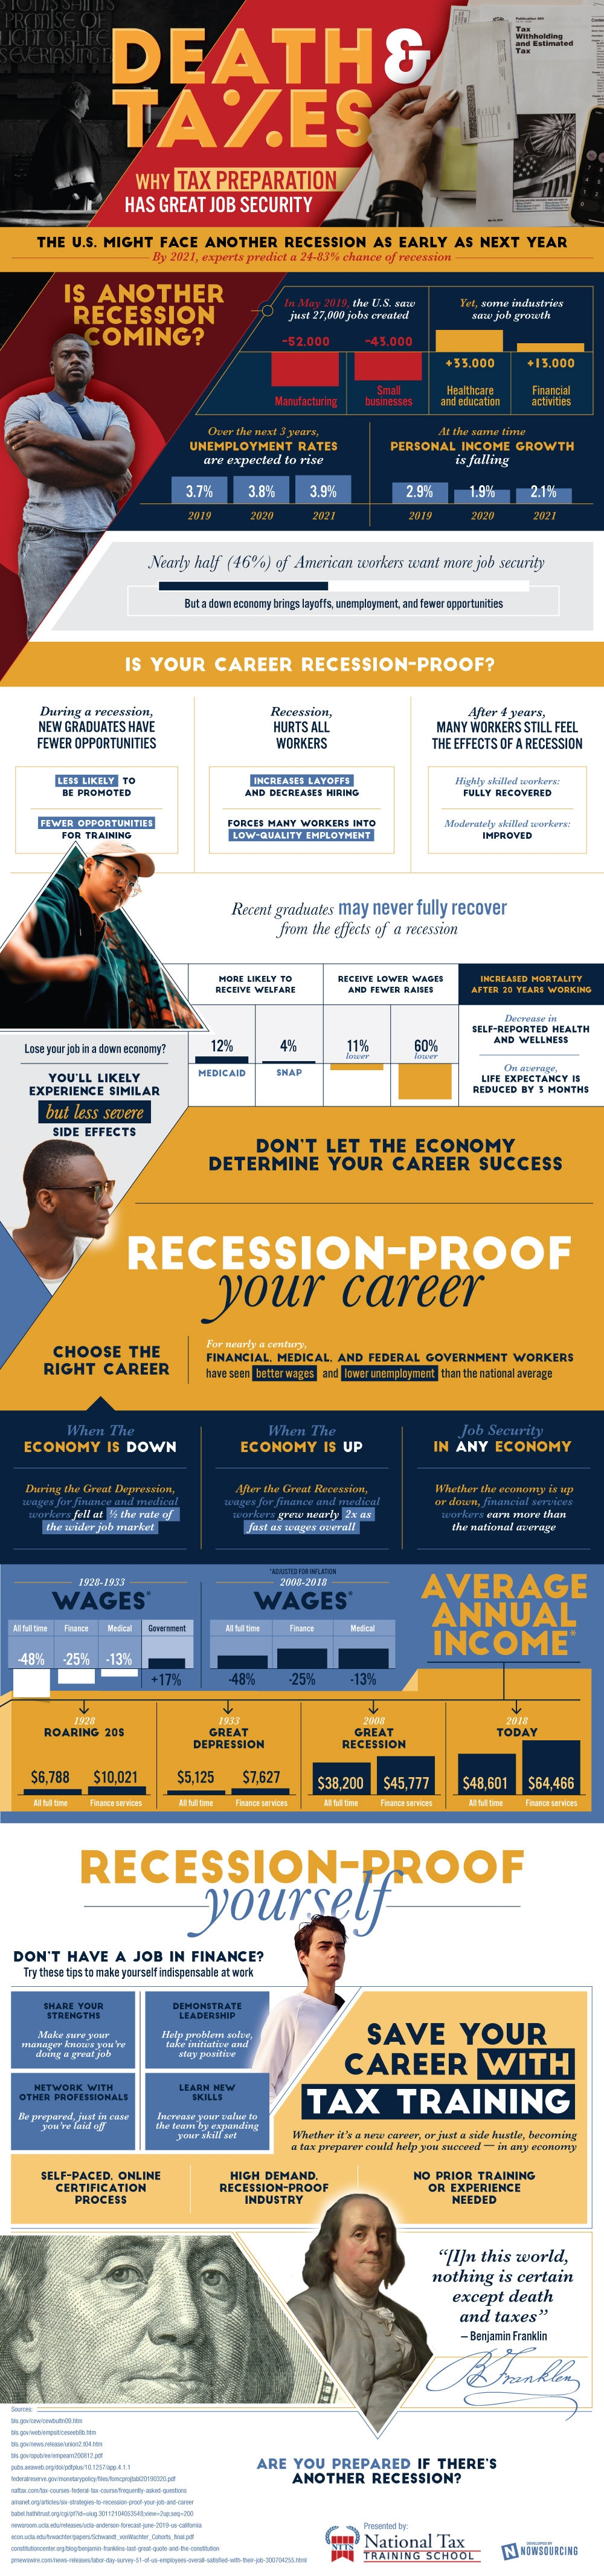 How a Tax Preparation Business Could Save You From the Next Recession [Infographic]